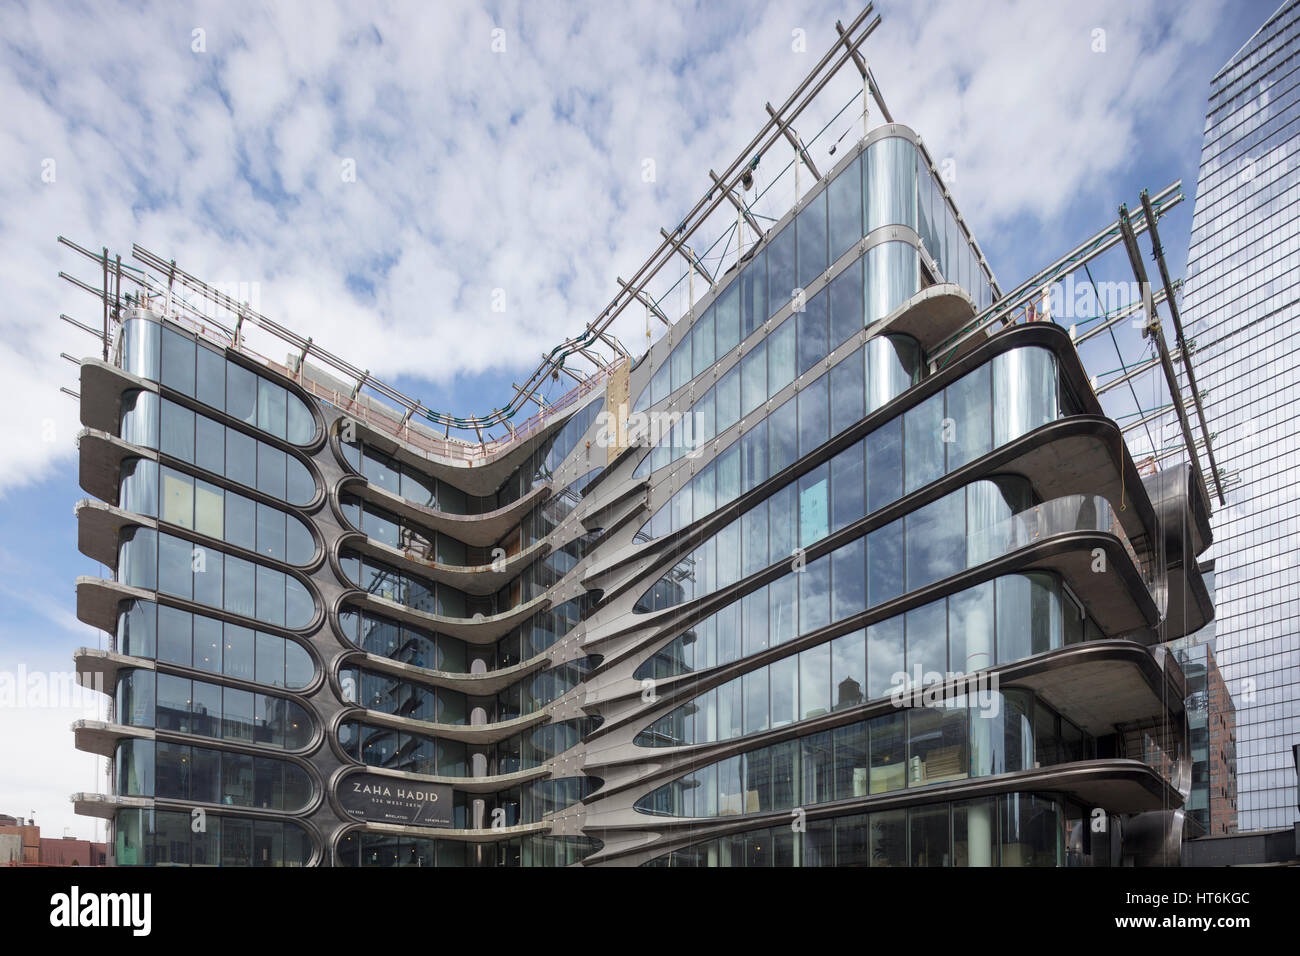 520 West 28th Street Condominium Residences, designed by Zaha Hadid - Stock Image